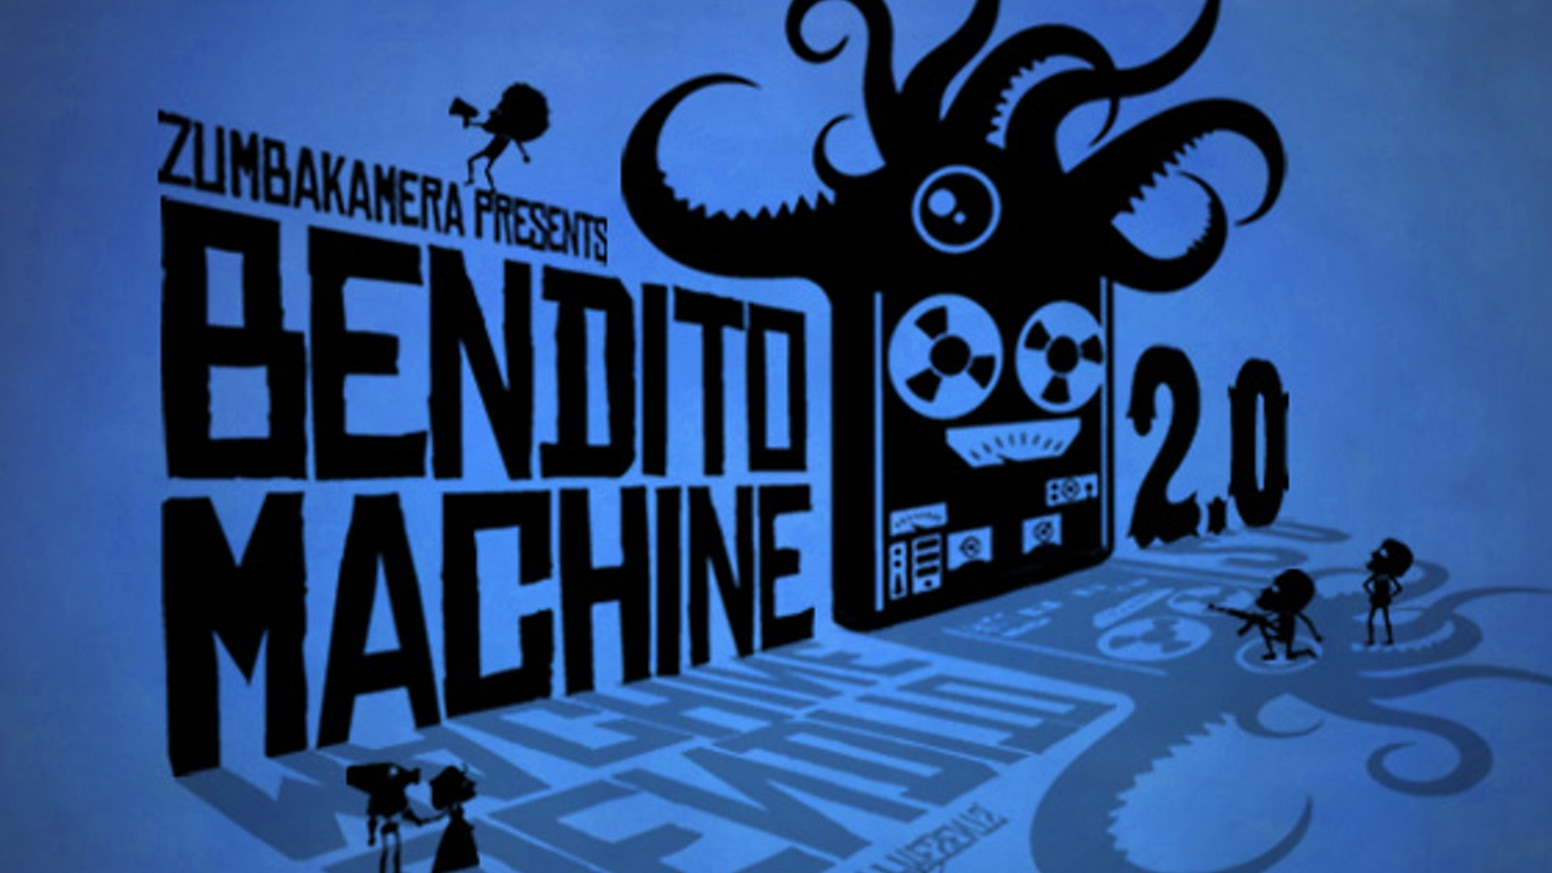 The fifth episode of the Bendito Machine saga is here!